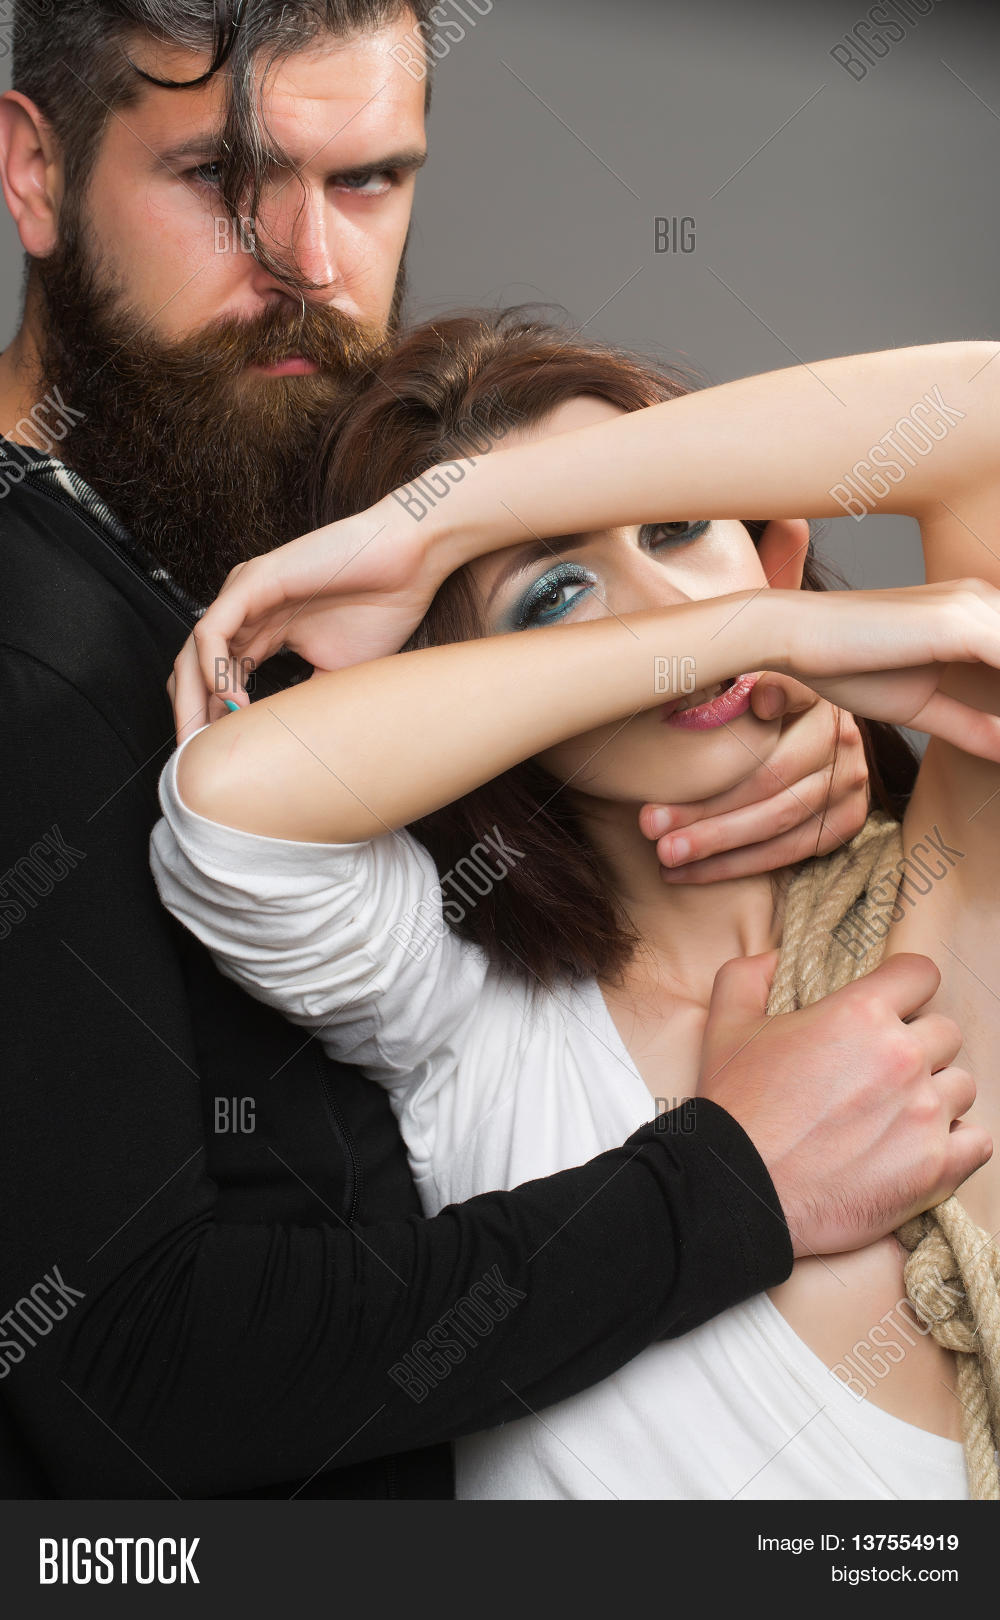 Female breast touching man Enlarged breasts